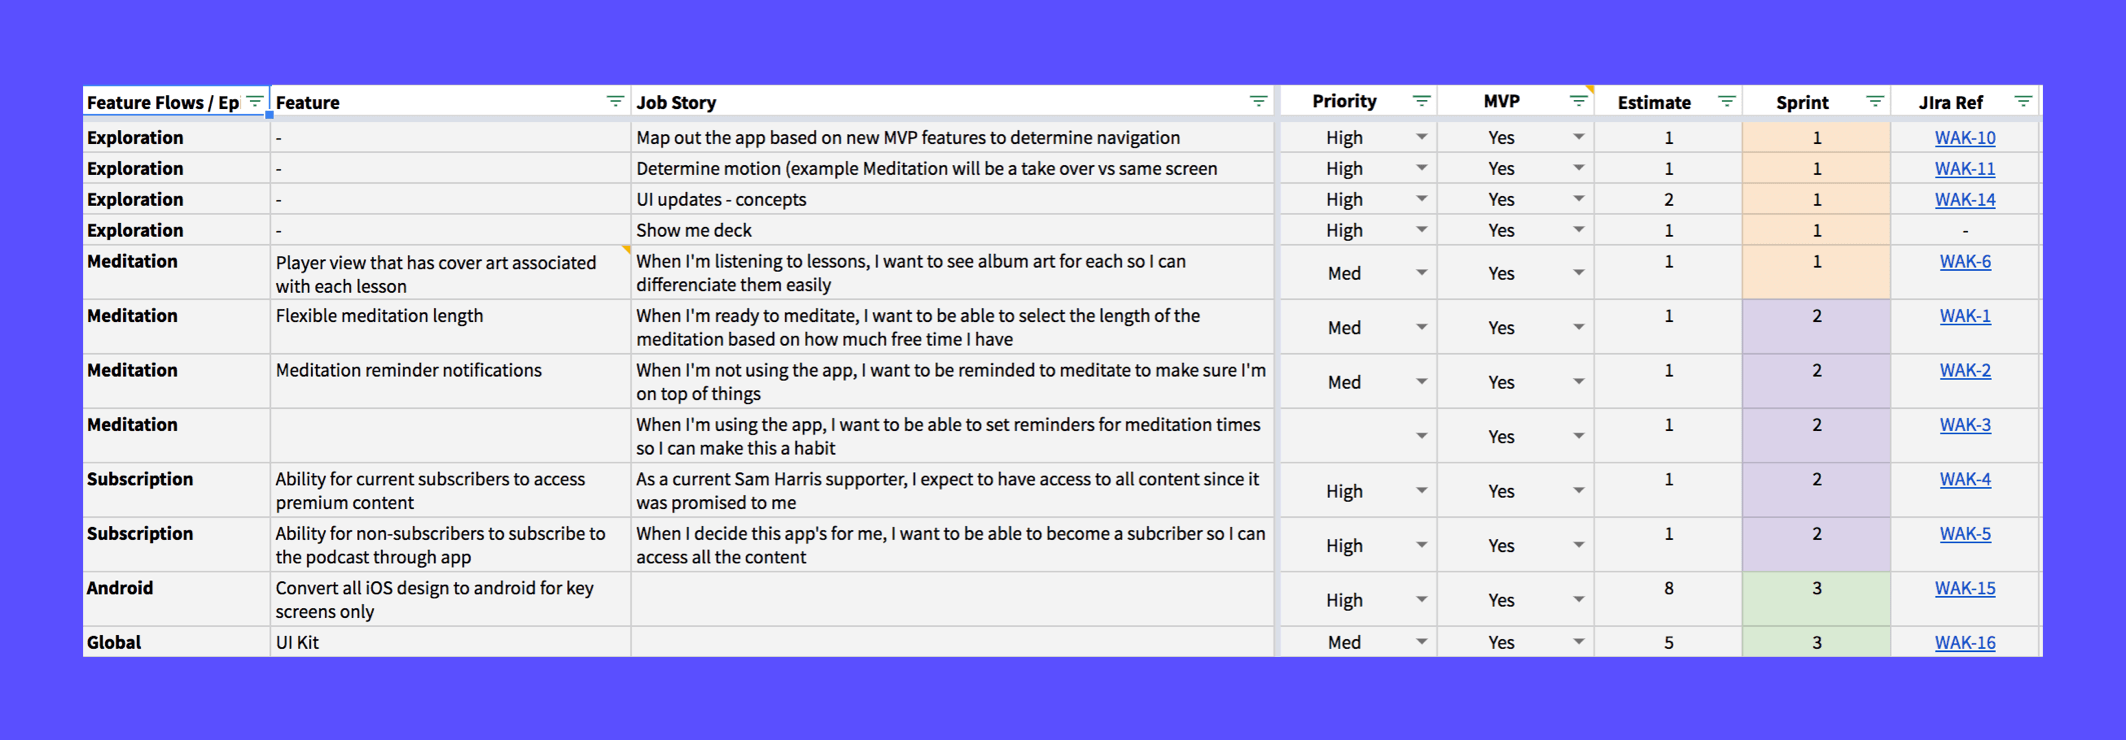 Waking Up's sprint planning document listing the prioritization of features